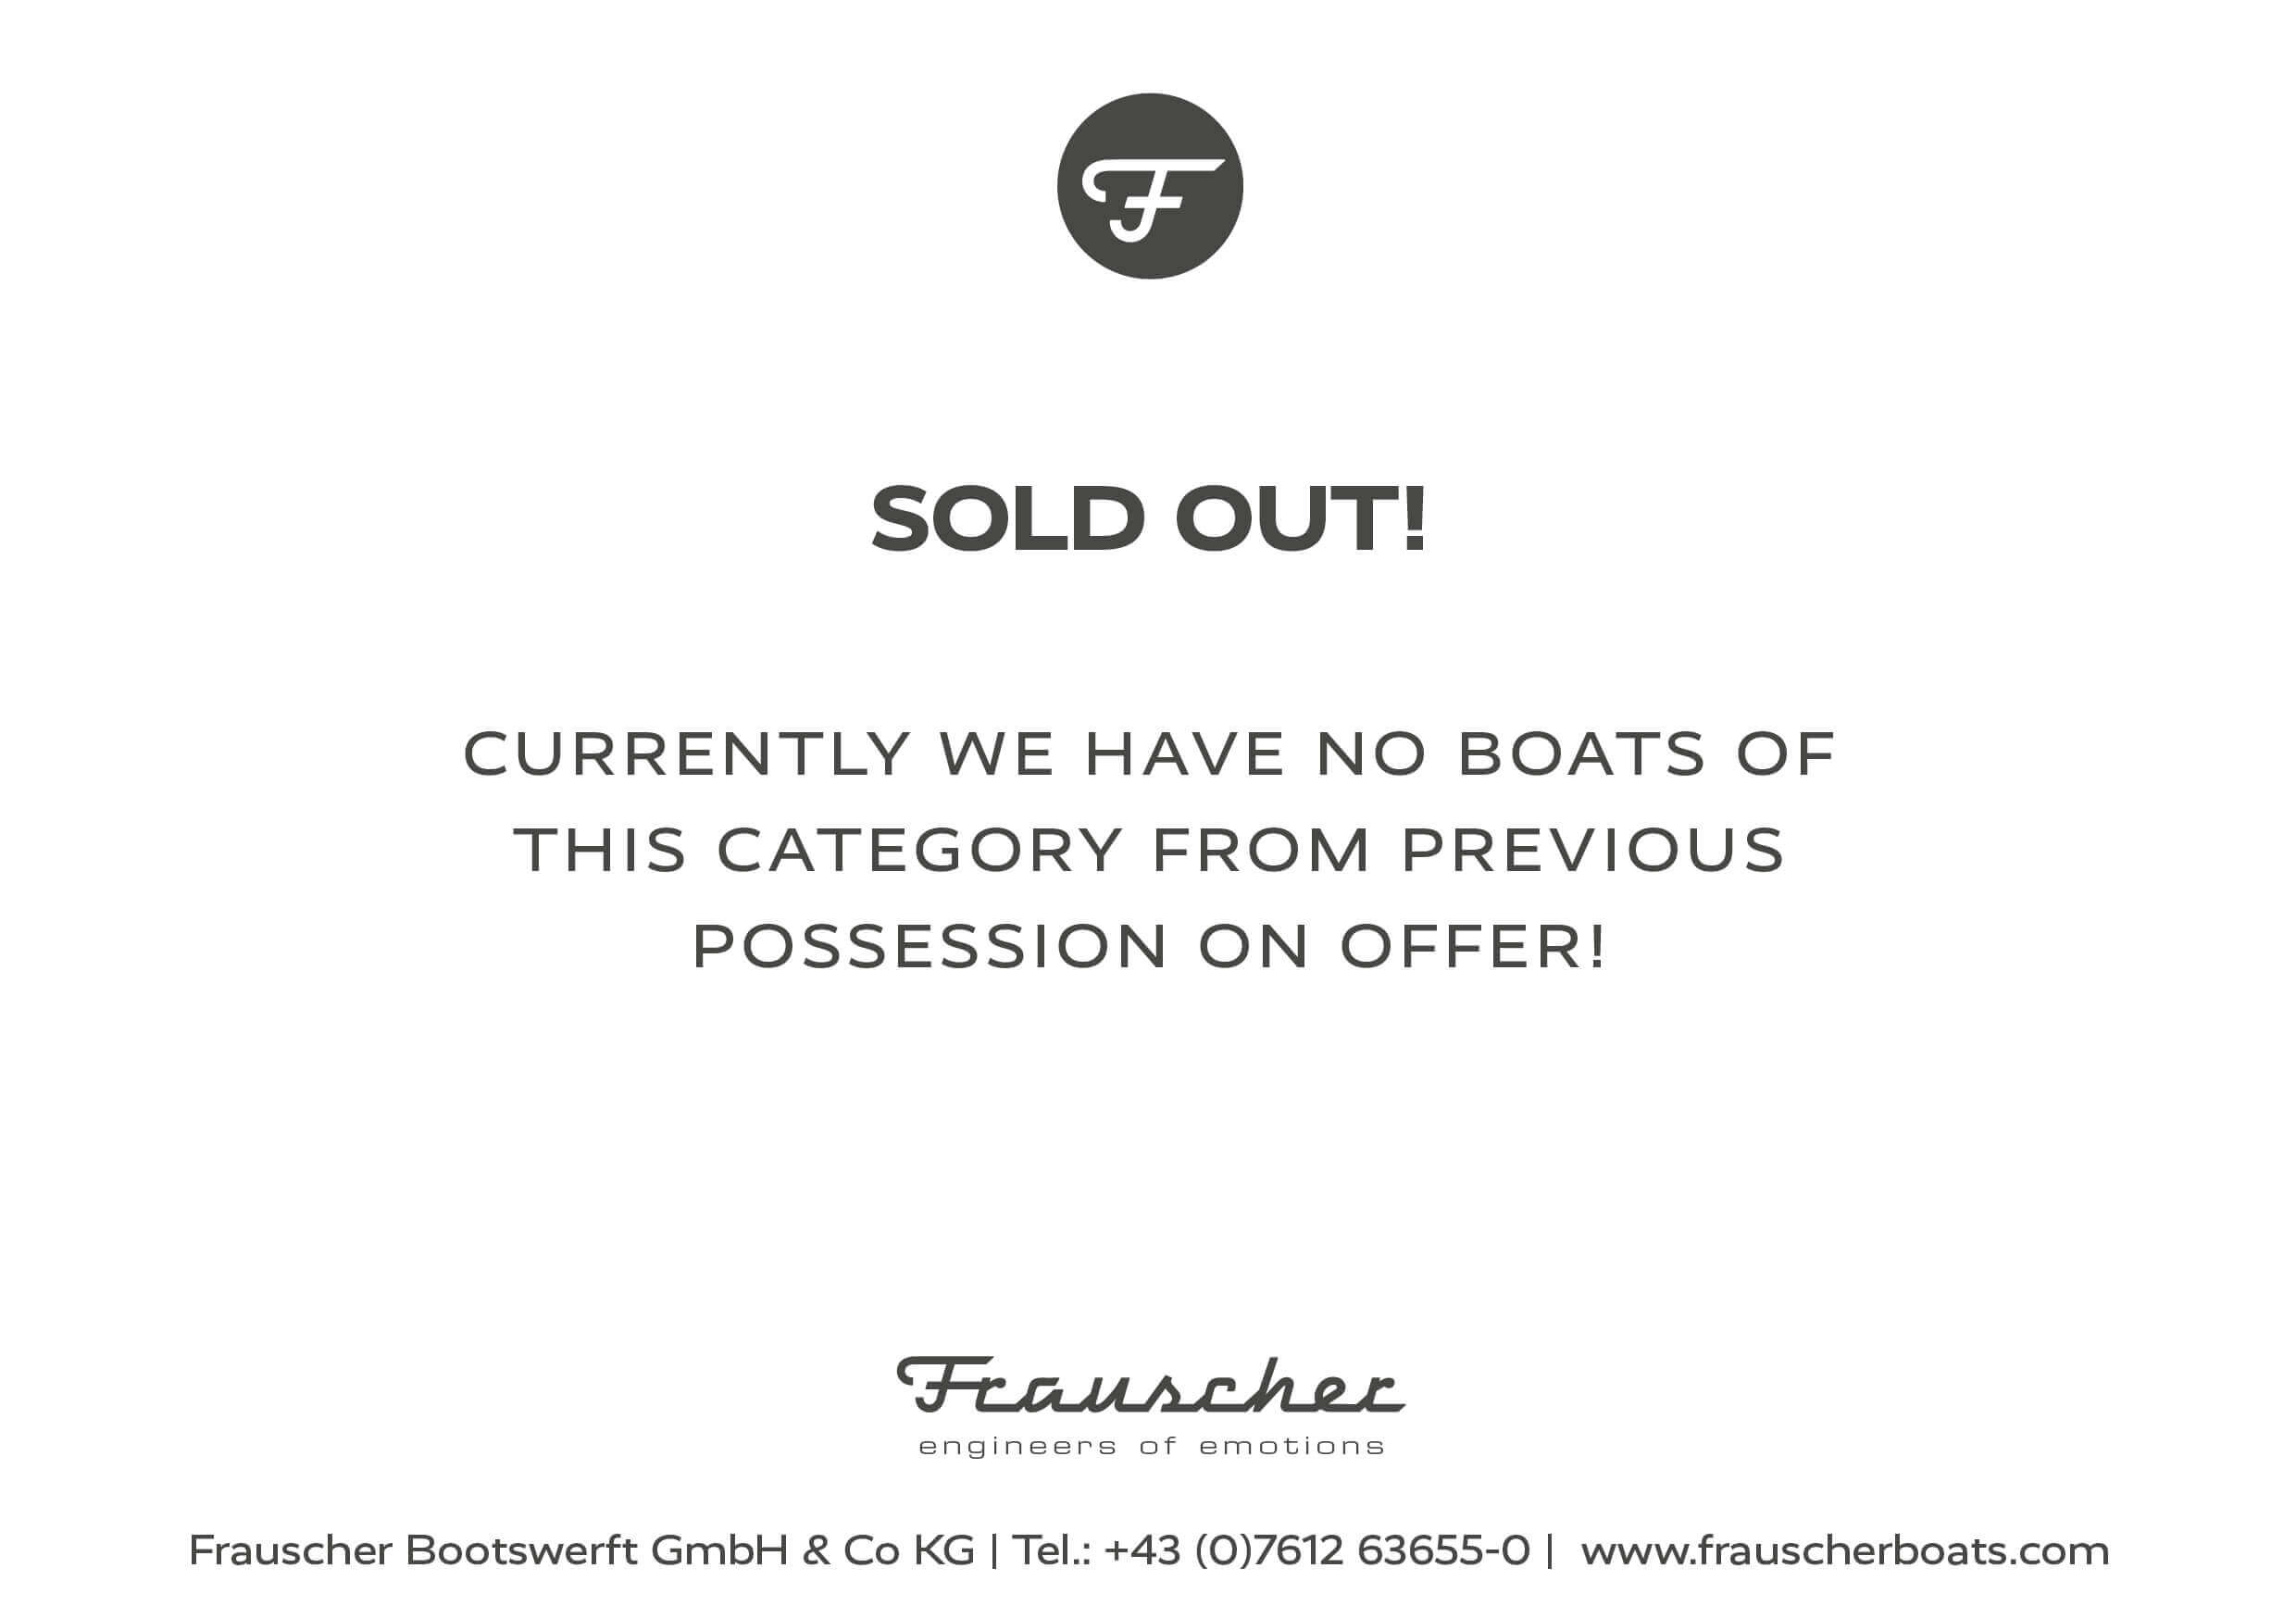 Pre-Owned Boats |Sold out